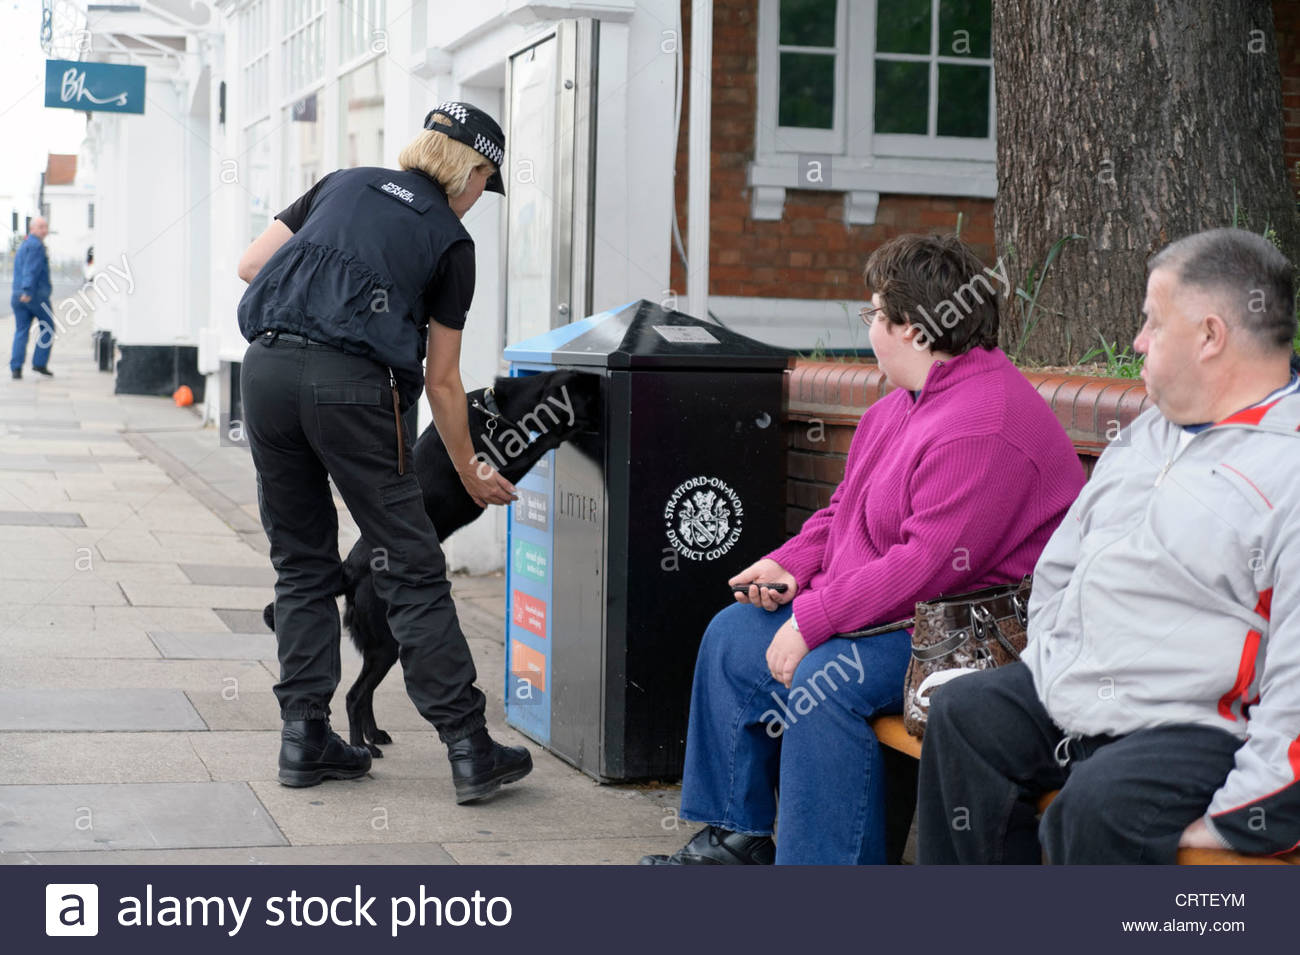 Police sniffer dog checking a litter bin security, Stratford on Avon, UK. - Stock Image